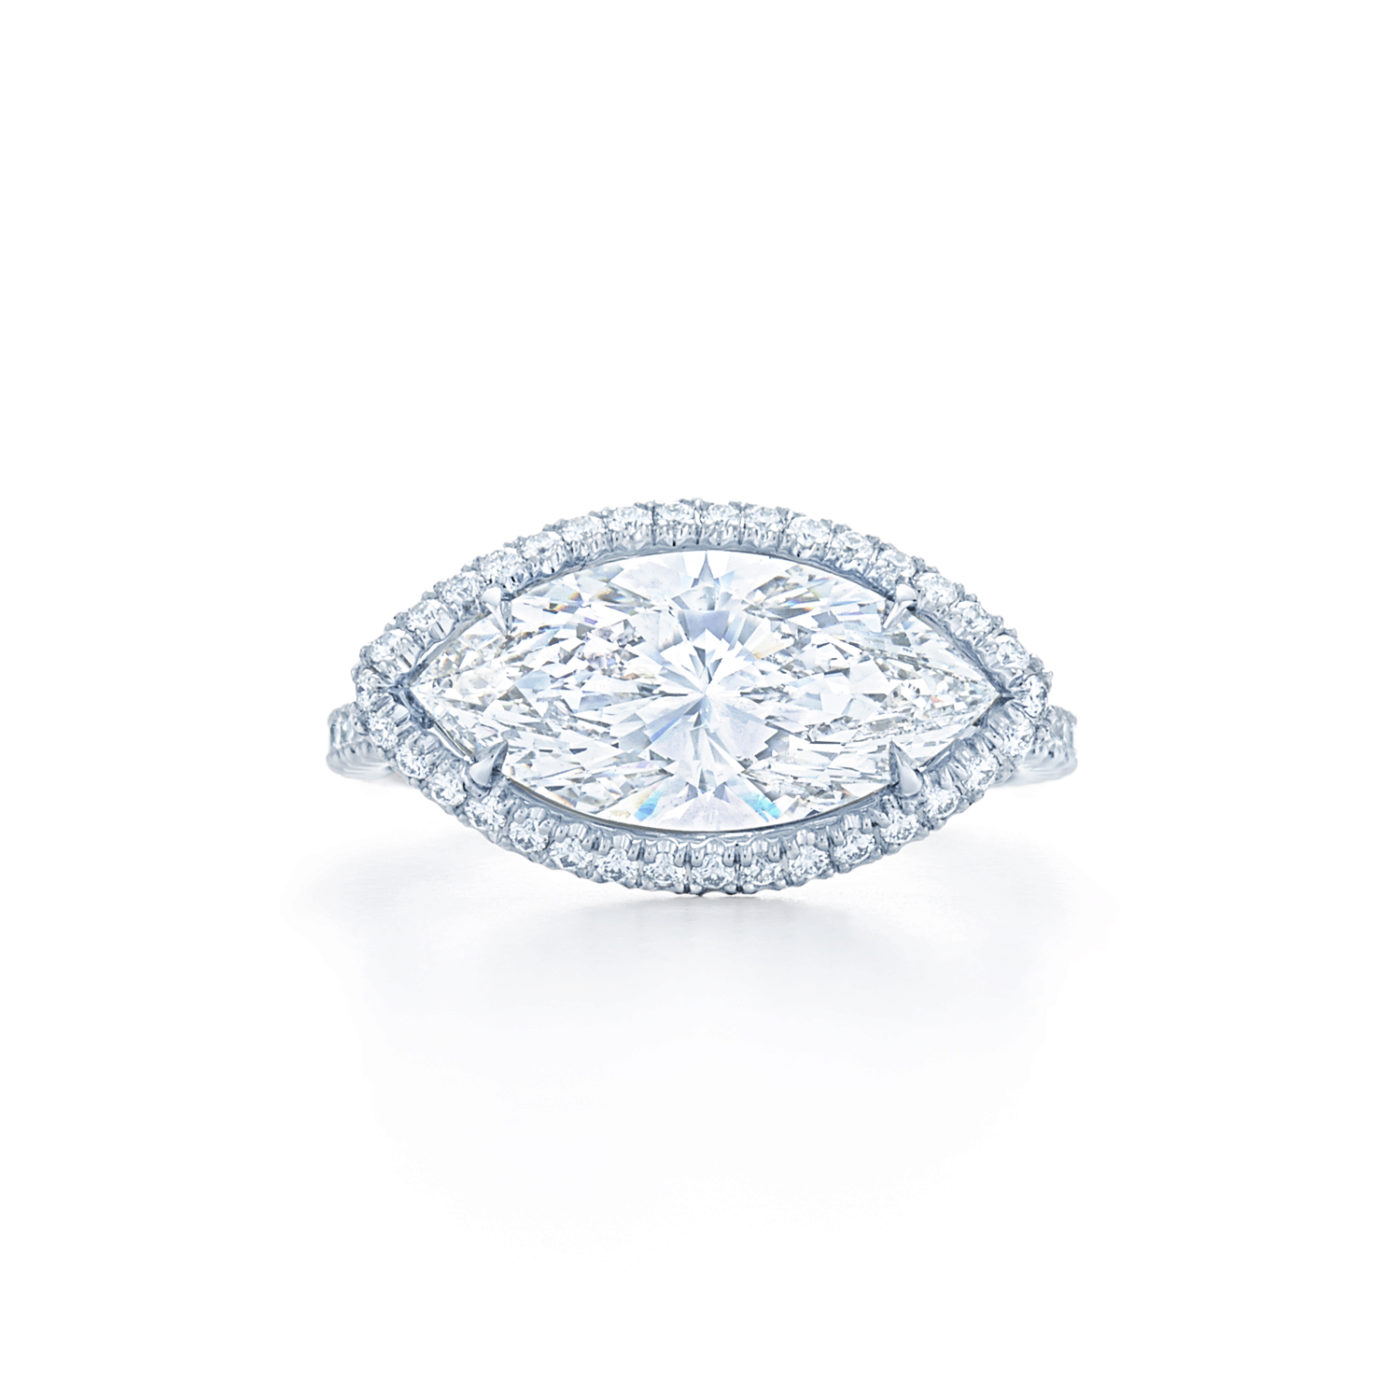 Marquise Diamond Engagement Ring Set East West With A Pave Diamond Halo In Platinum Kwiat